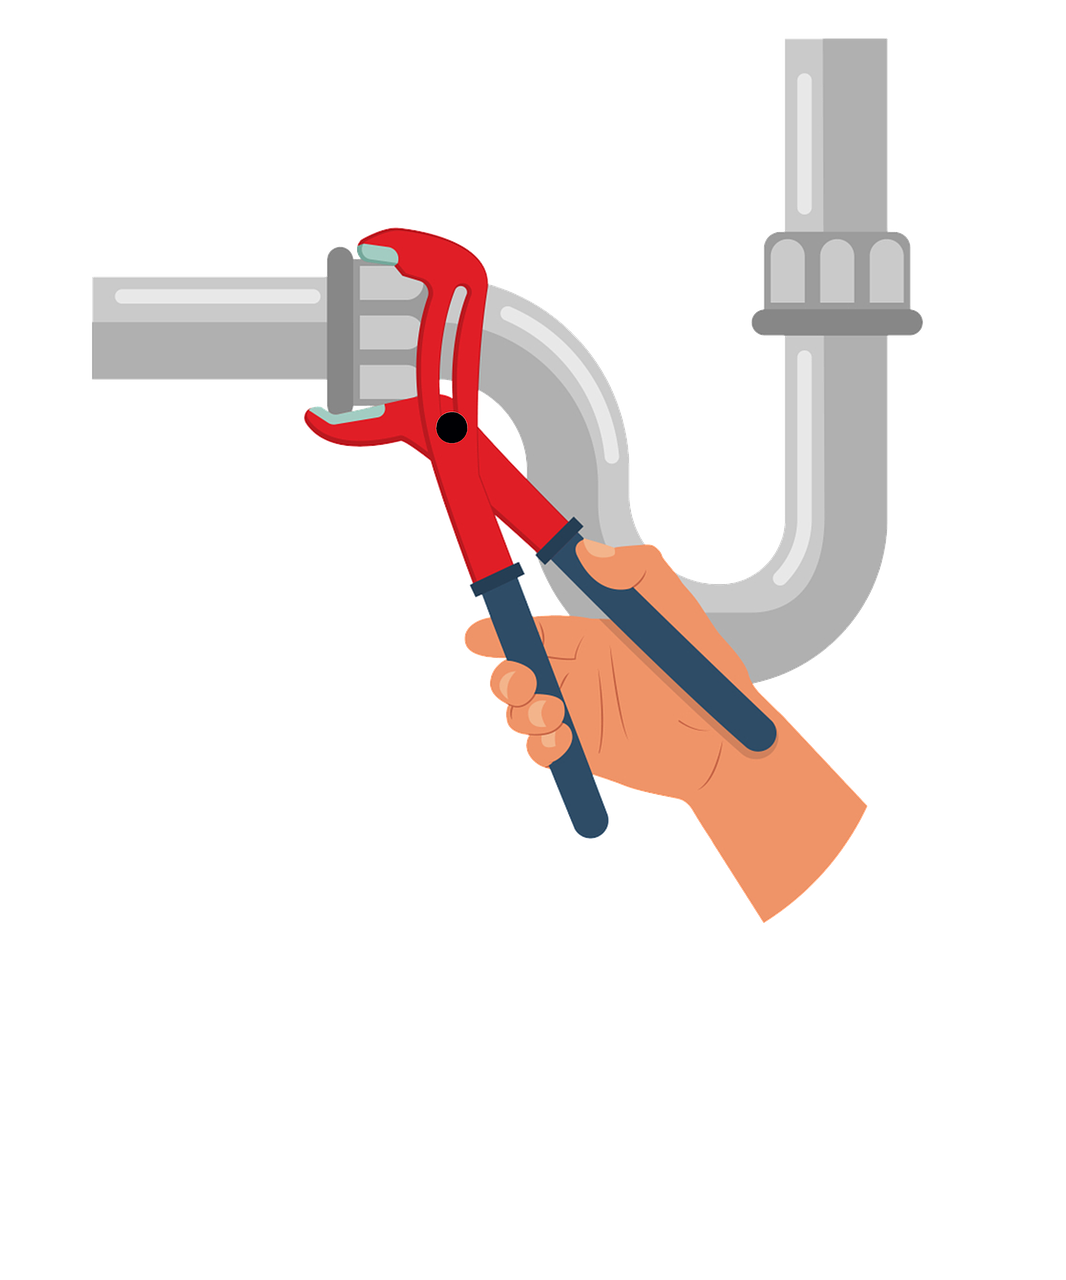 plumber  plumbing tools  pipefitter free photo